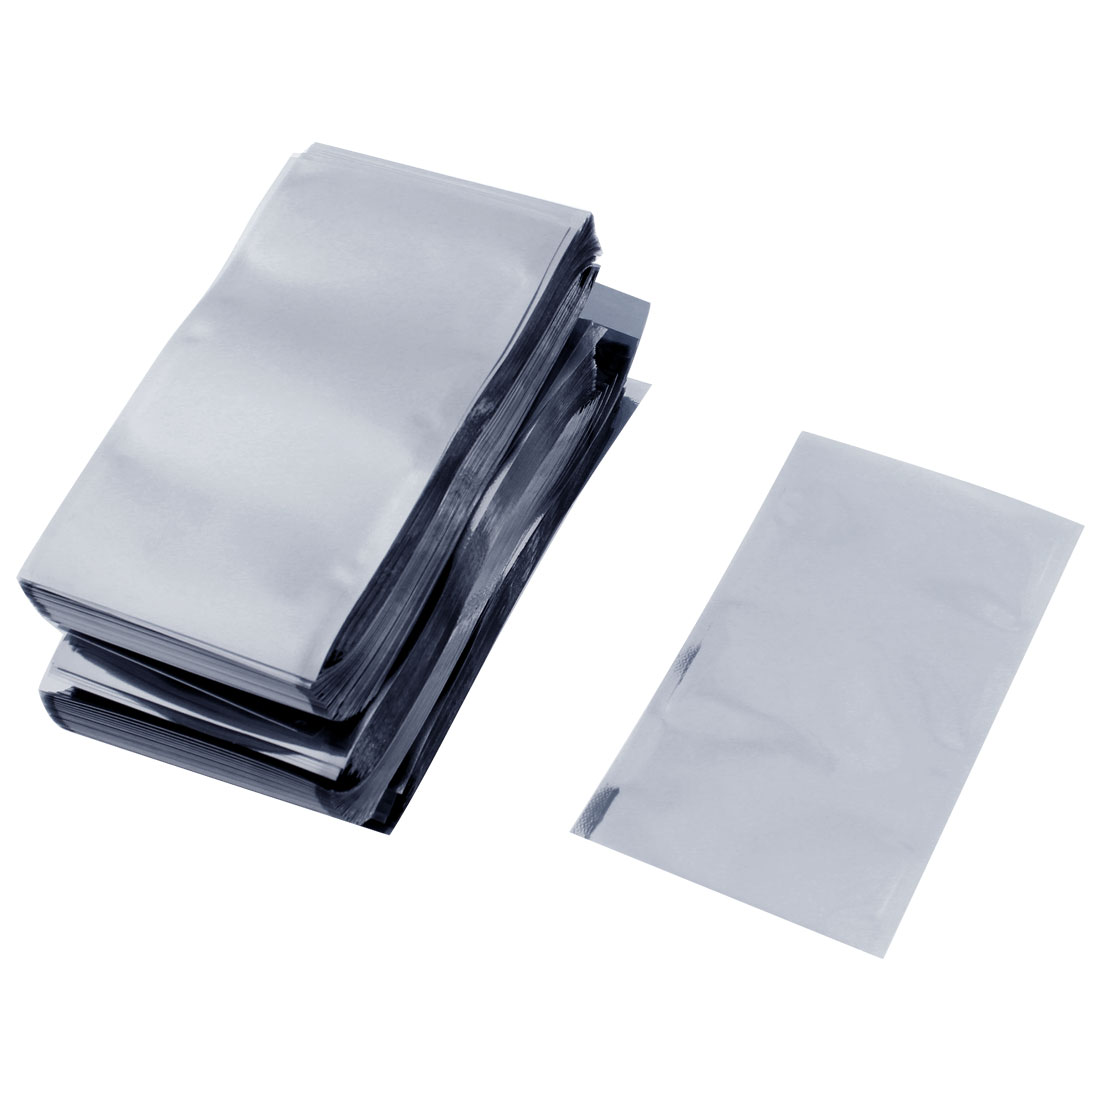 "500pcs 3.5"" x 6"" Anti Static Shielding Bag Holder Packagings Open Top"